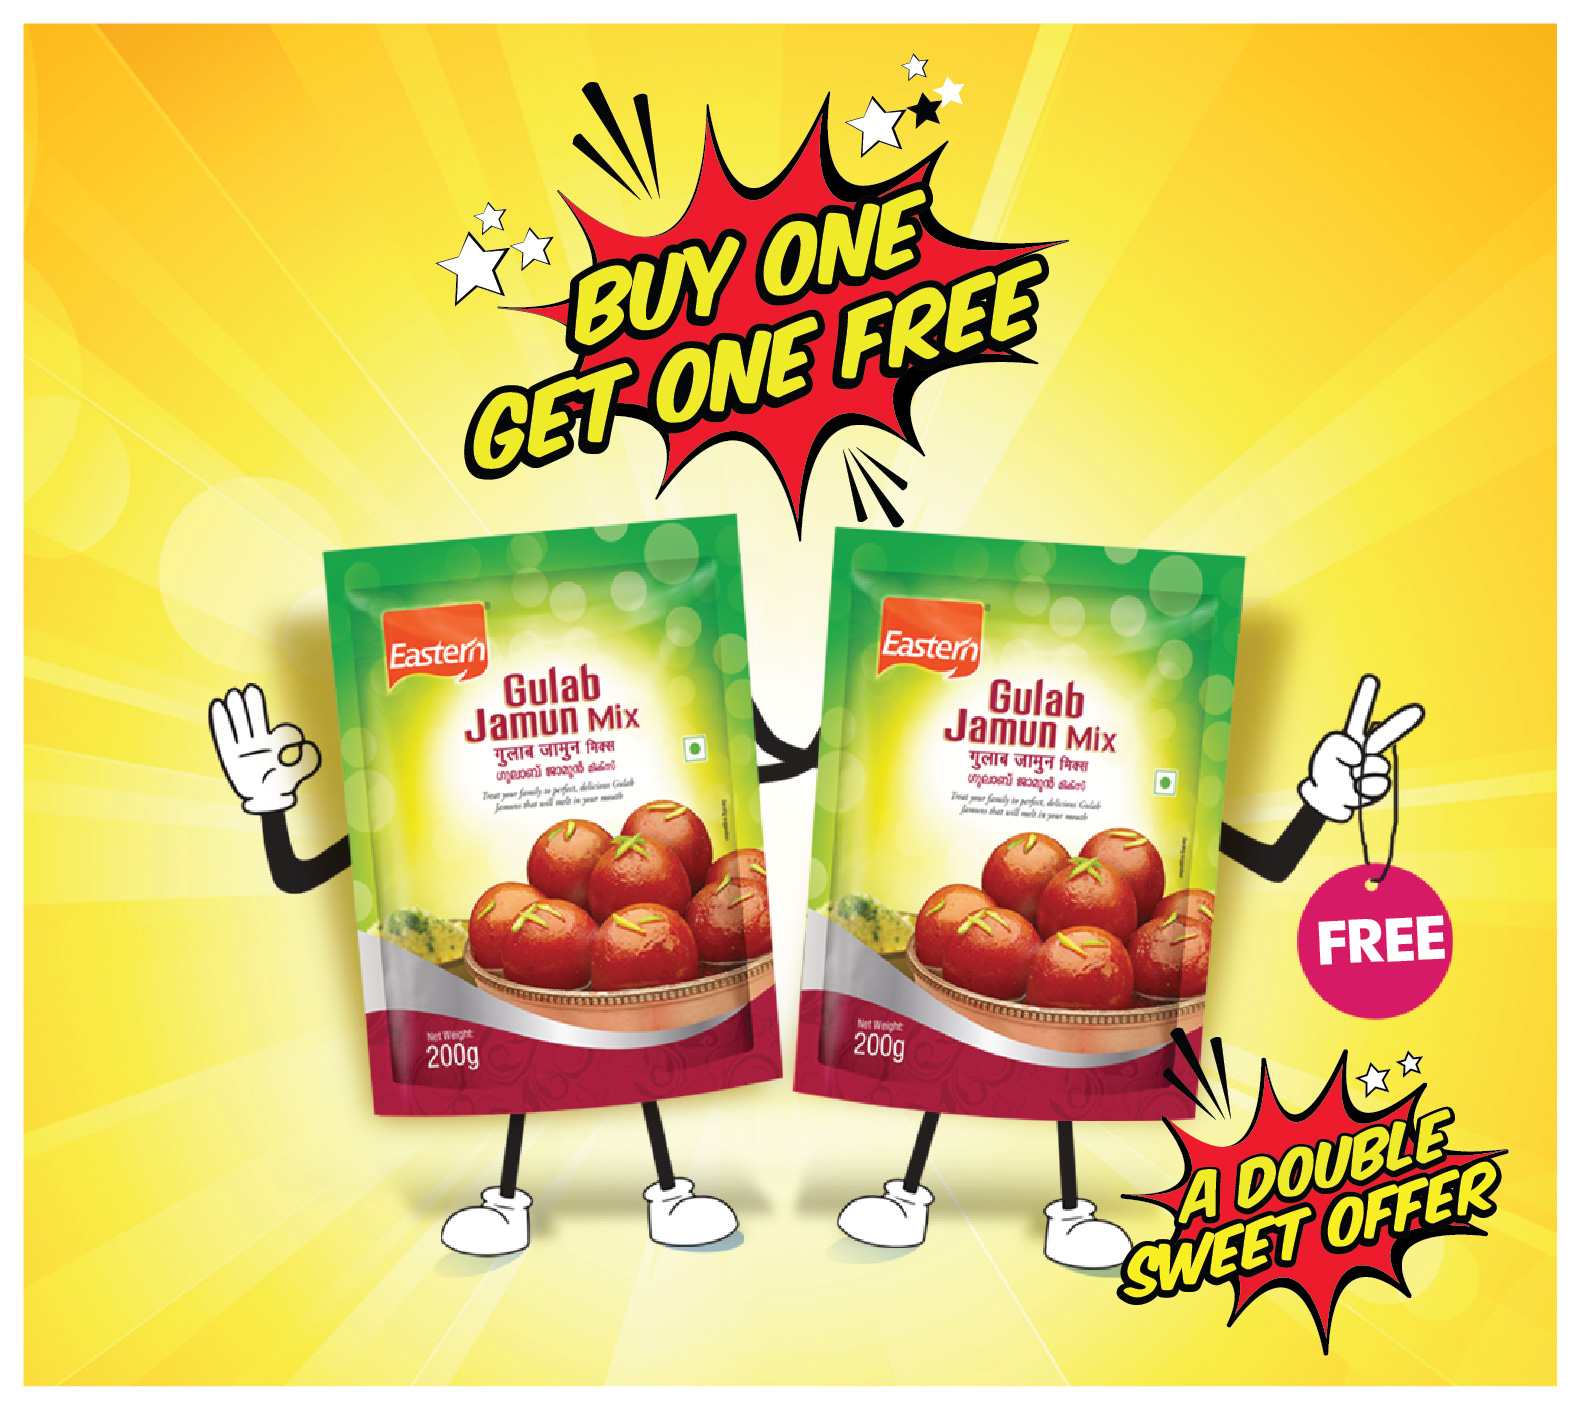 Gulab Jamun Buy one Get one Free